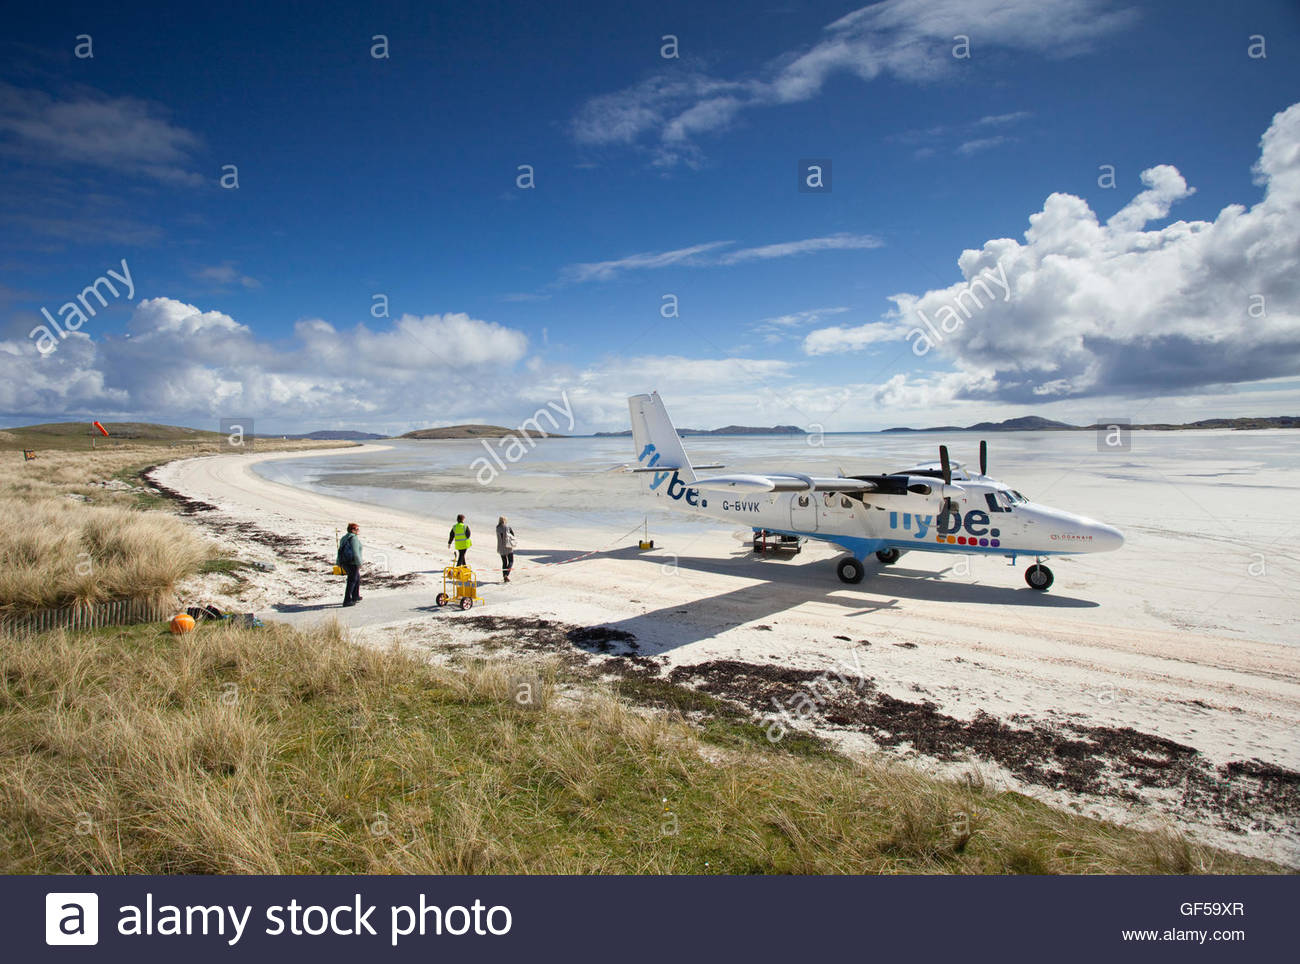 Passengers walking towards an aeroplane on Traigh Mhor Beach - the runway for the Isle of Barra Airport, Outer Hebrides. - Stock Image